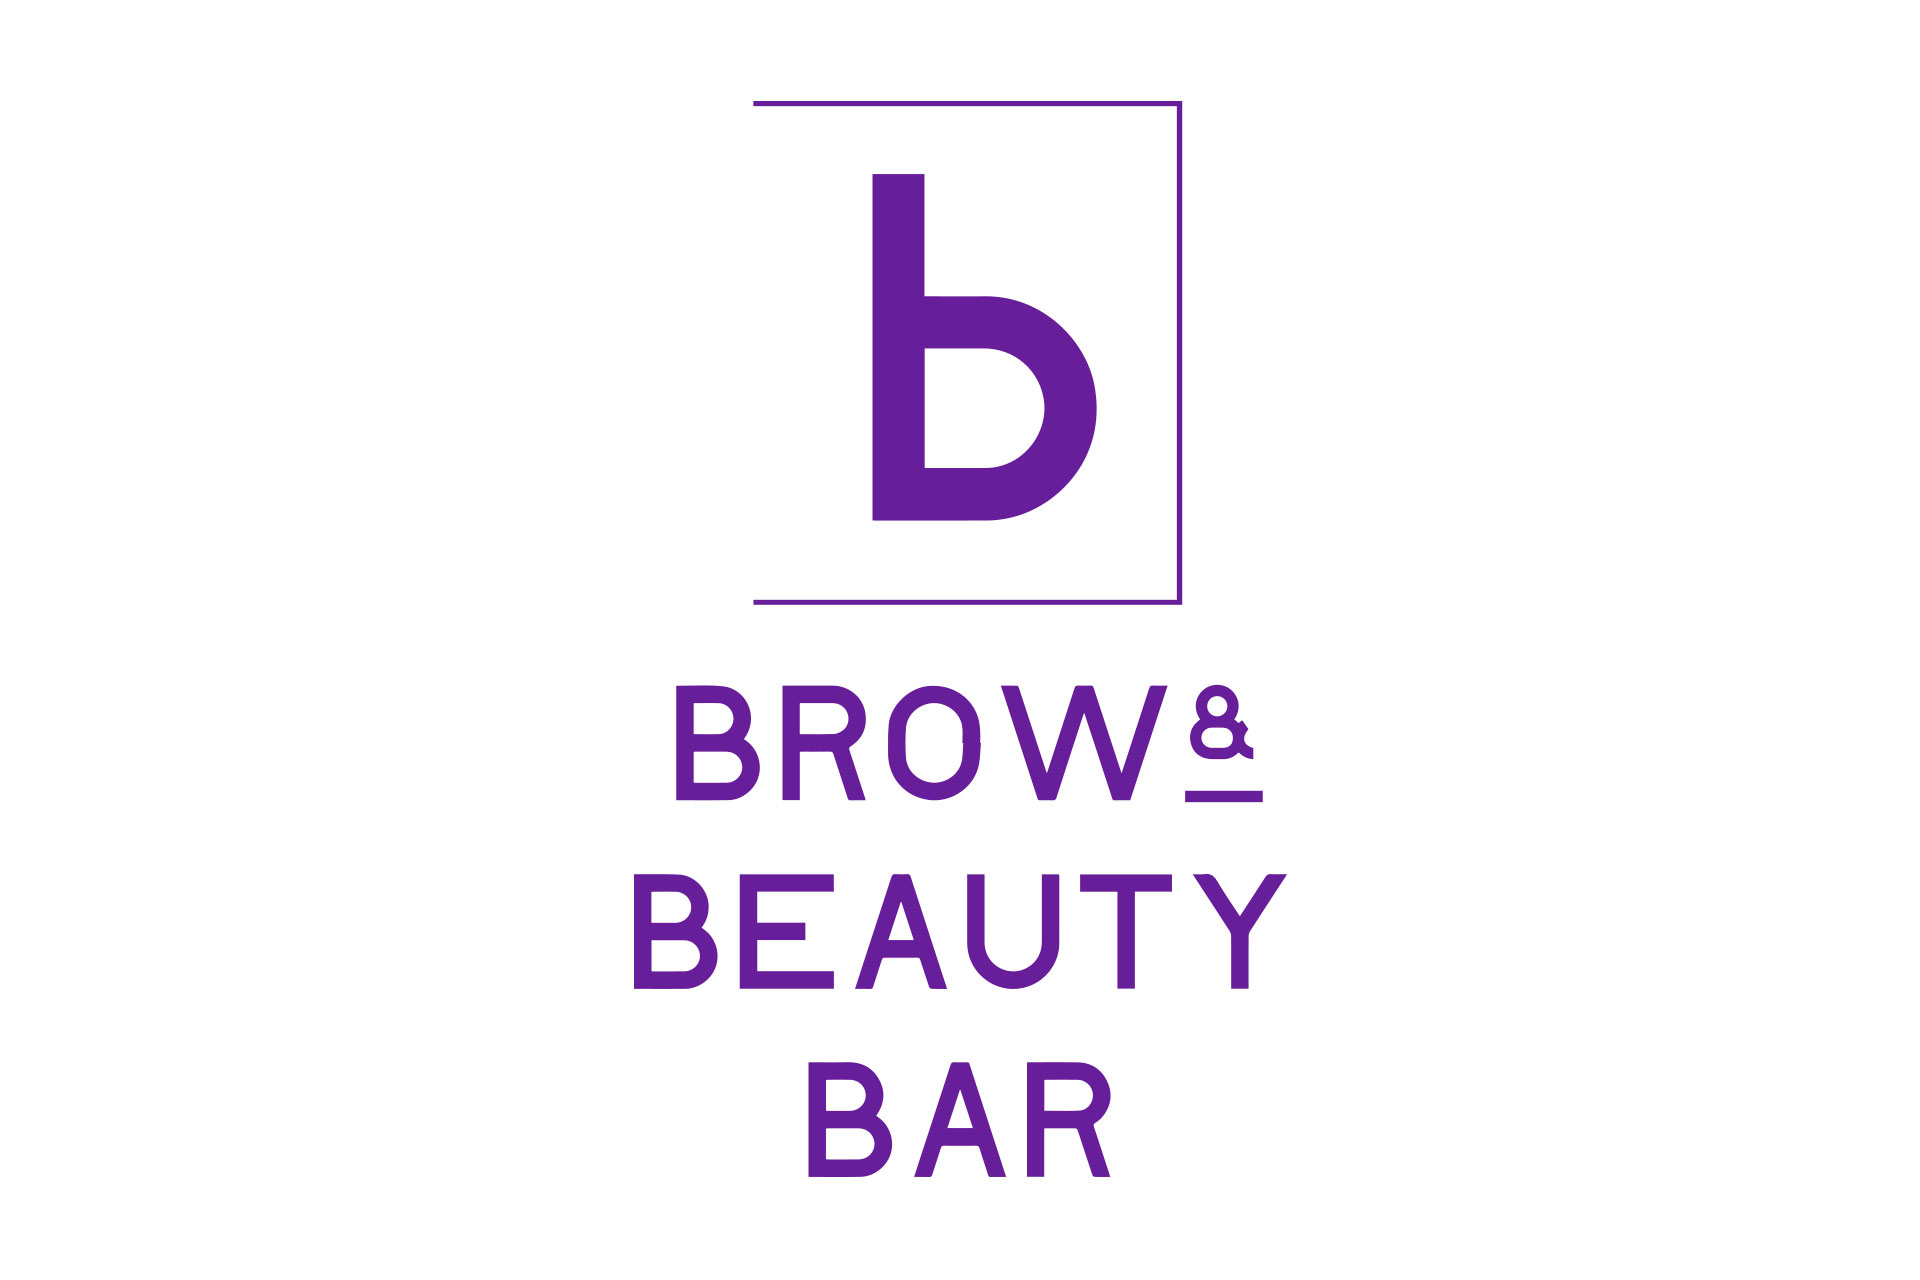 Brow & Beauty Bar